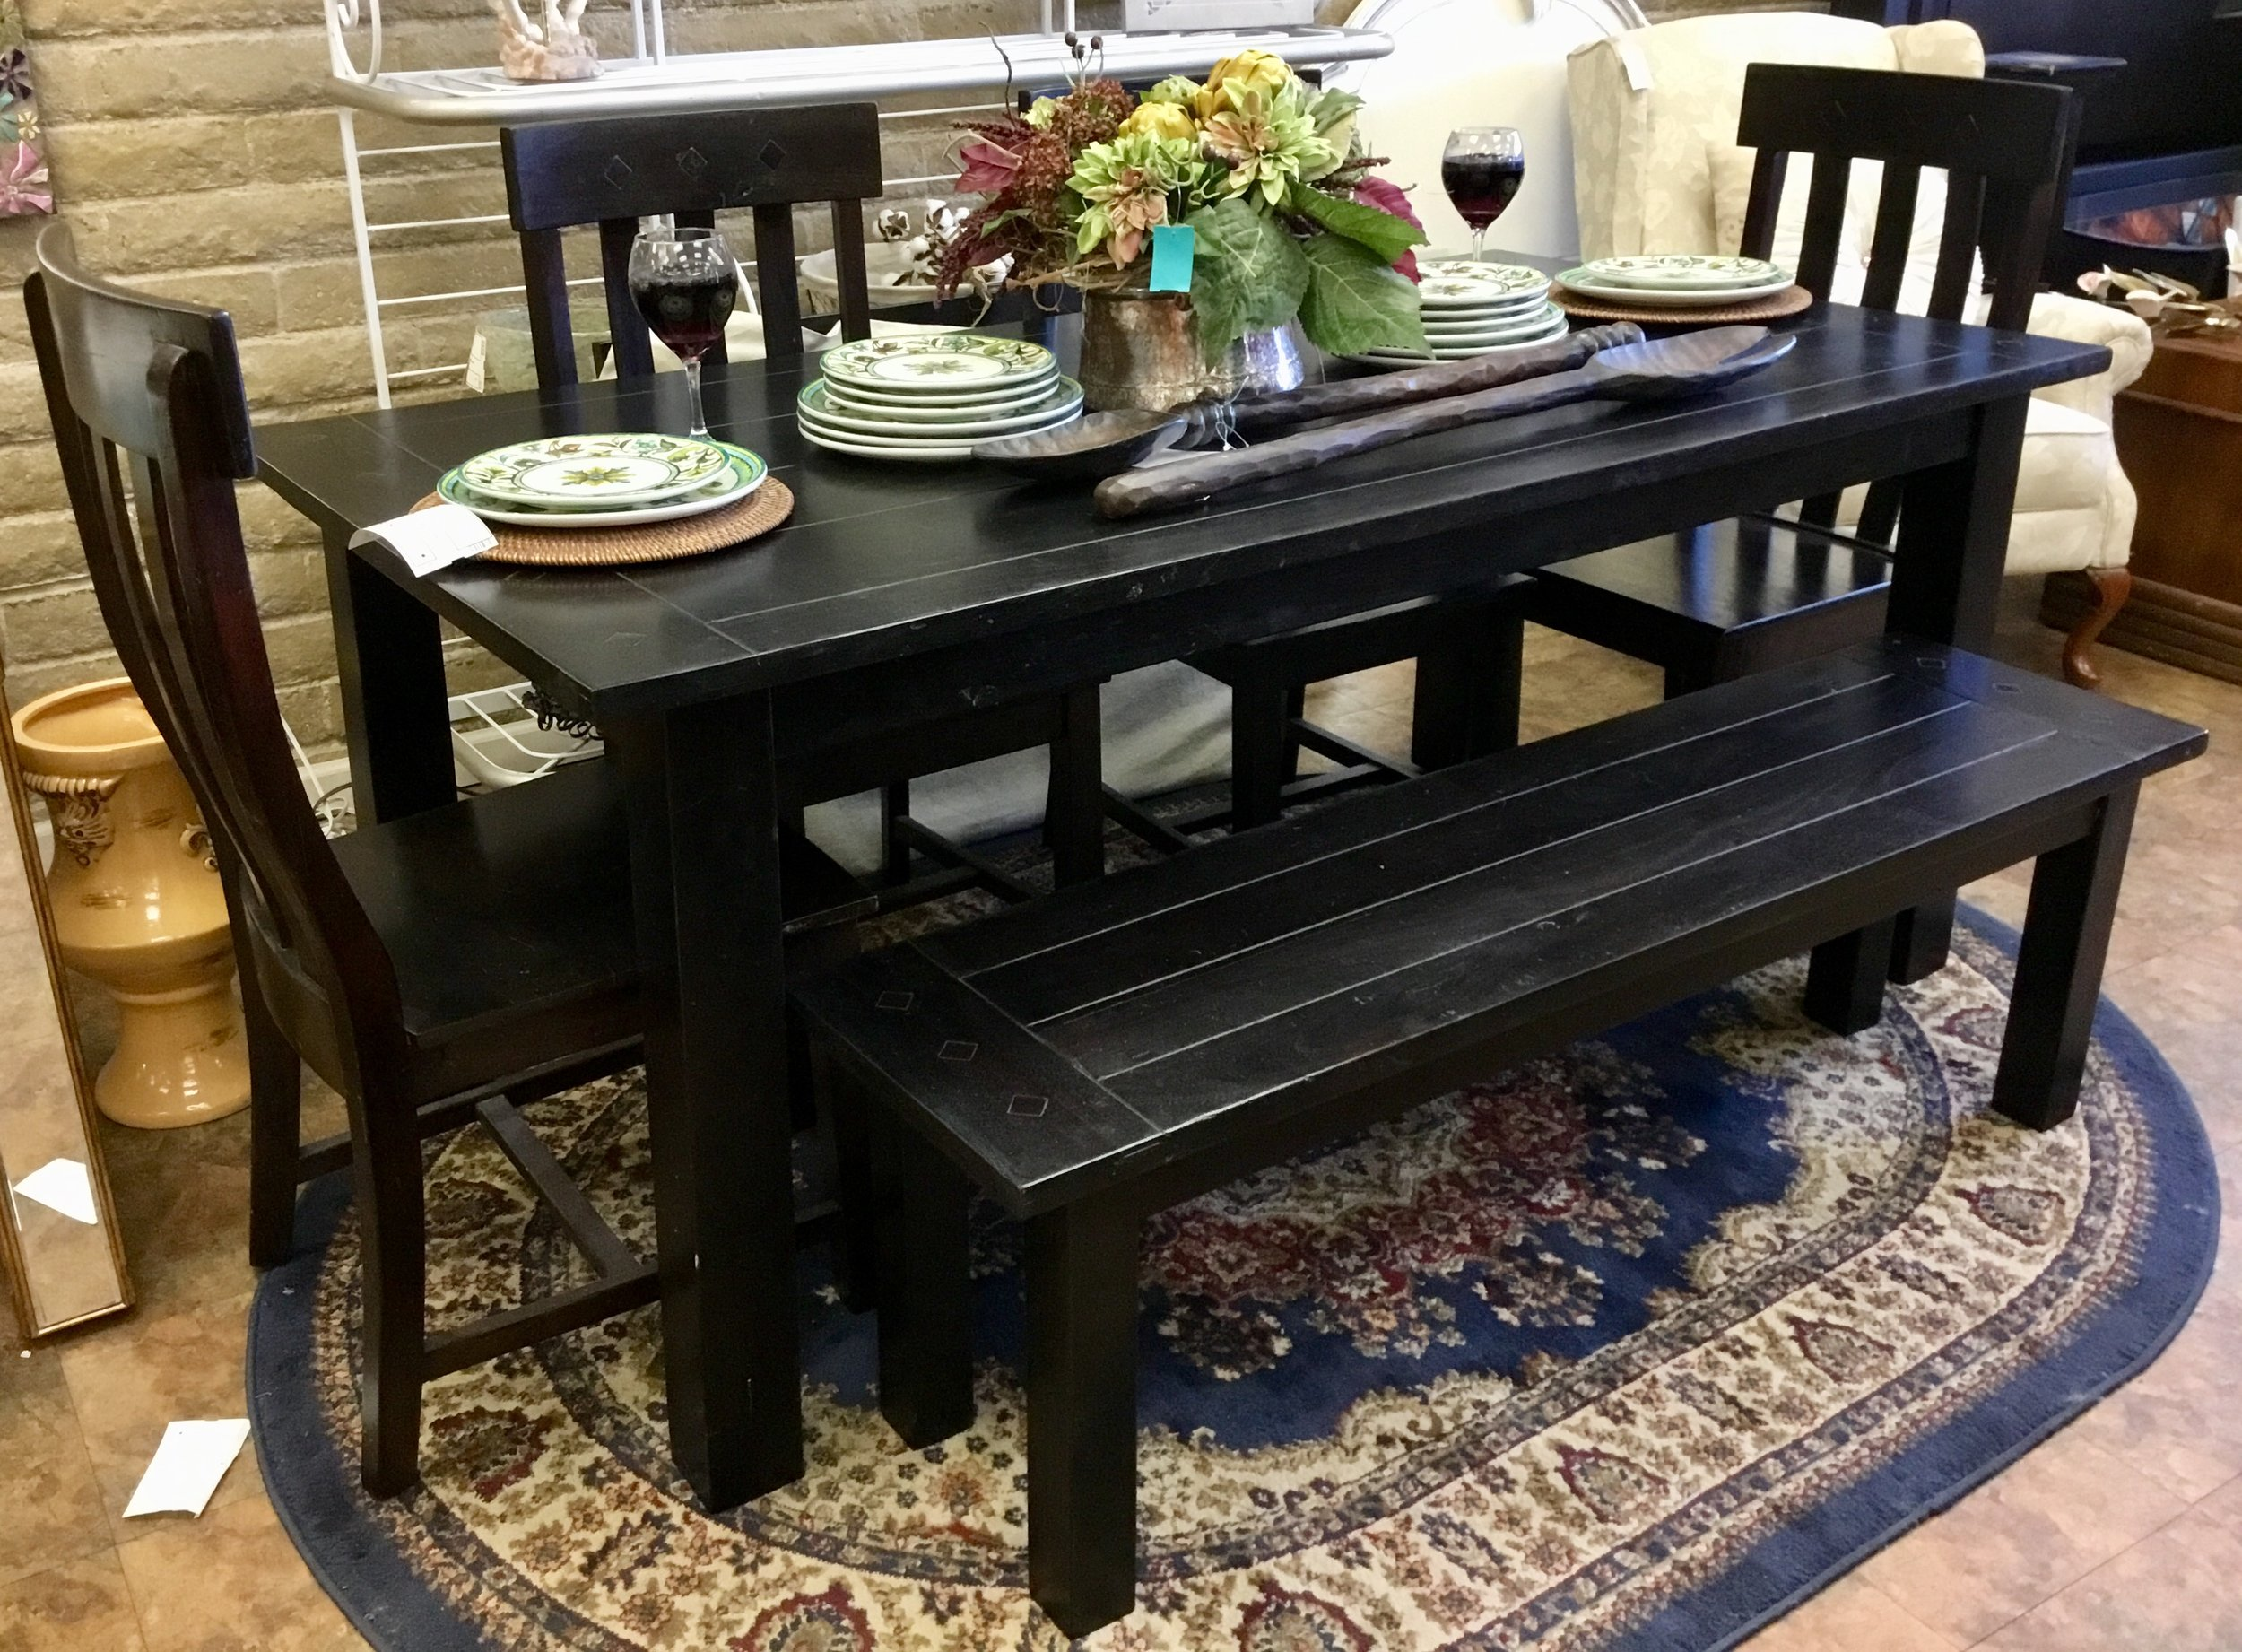 World Market Expanding Dining Table w/ Bench & 4 Chairs — Finders Keepers